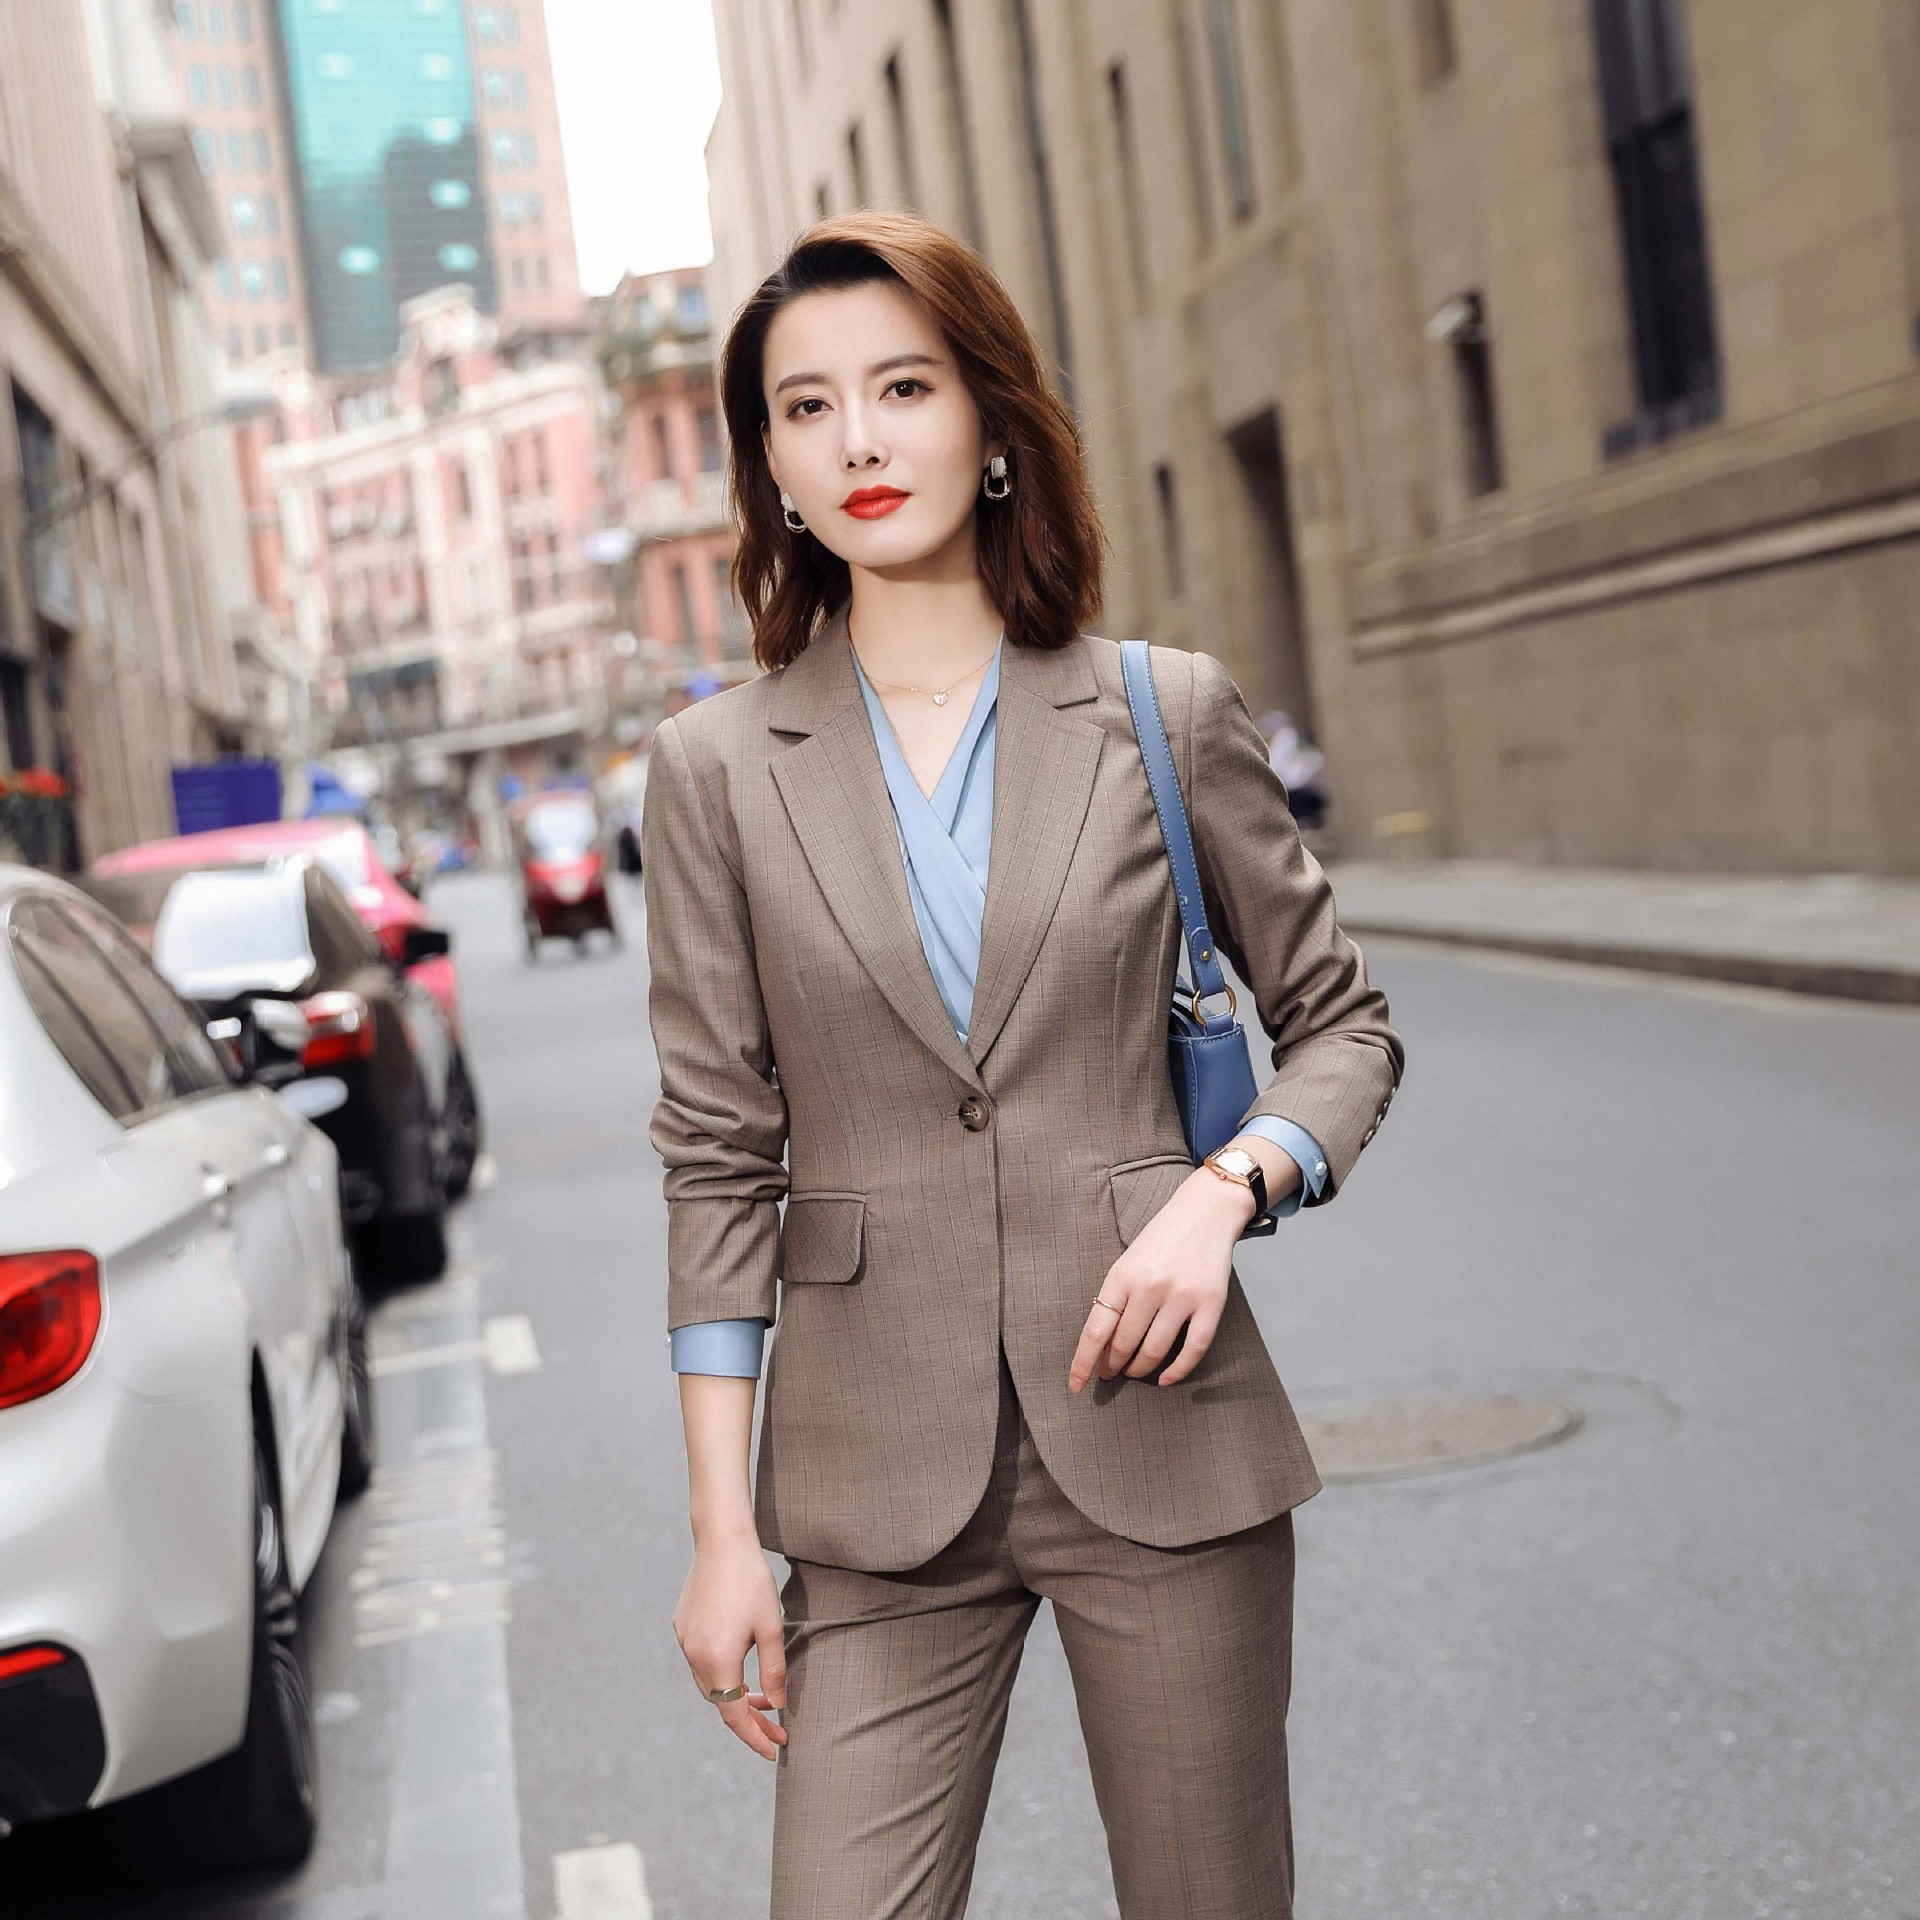 Fall 2020 new Plaid fashion casual goddess Jacket Top Womens Korean long sleeve slim fit versatile suit